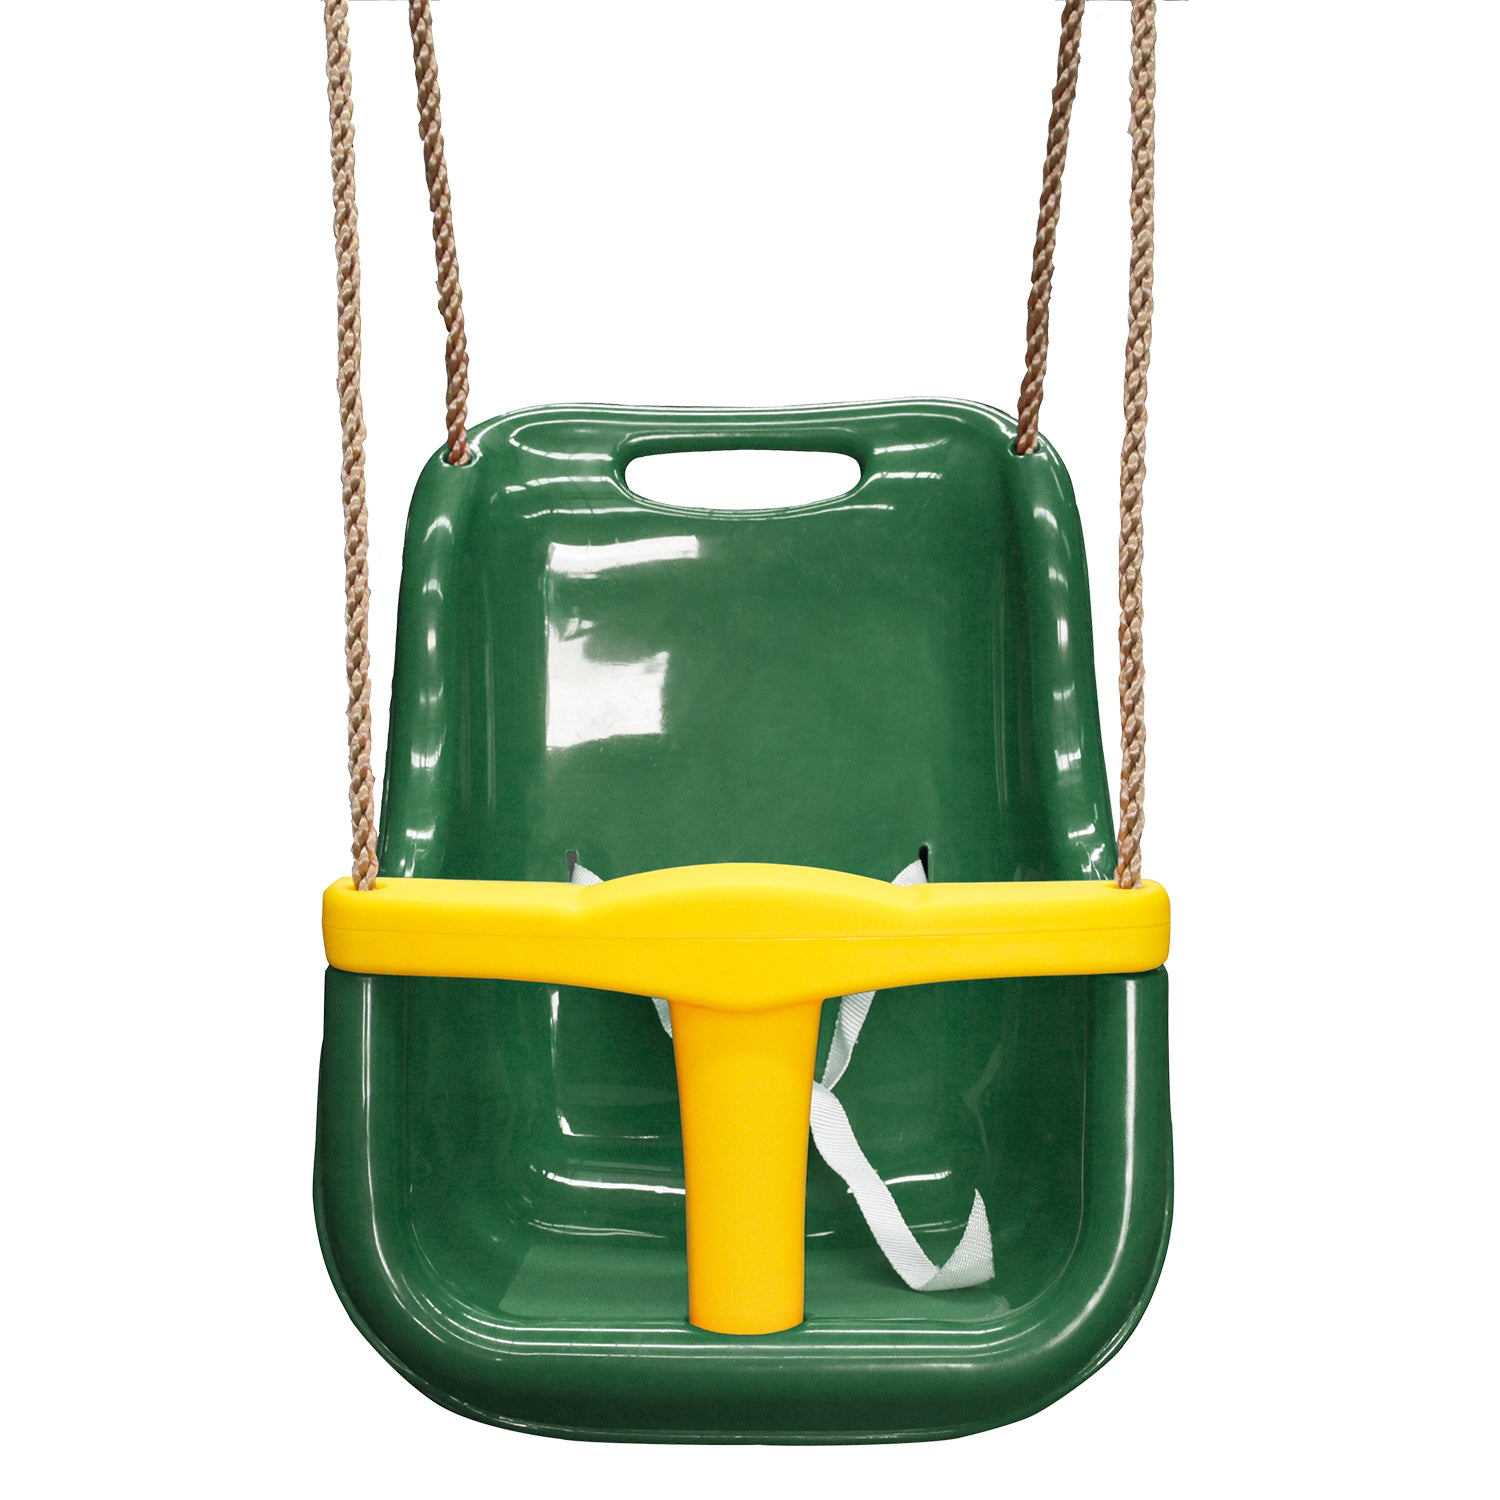 Lifespan Kids Baby Swing Seat Green with Rope Extensions